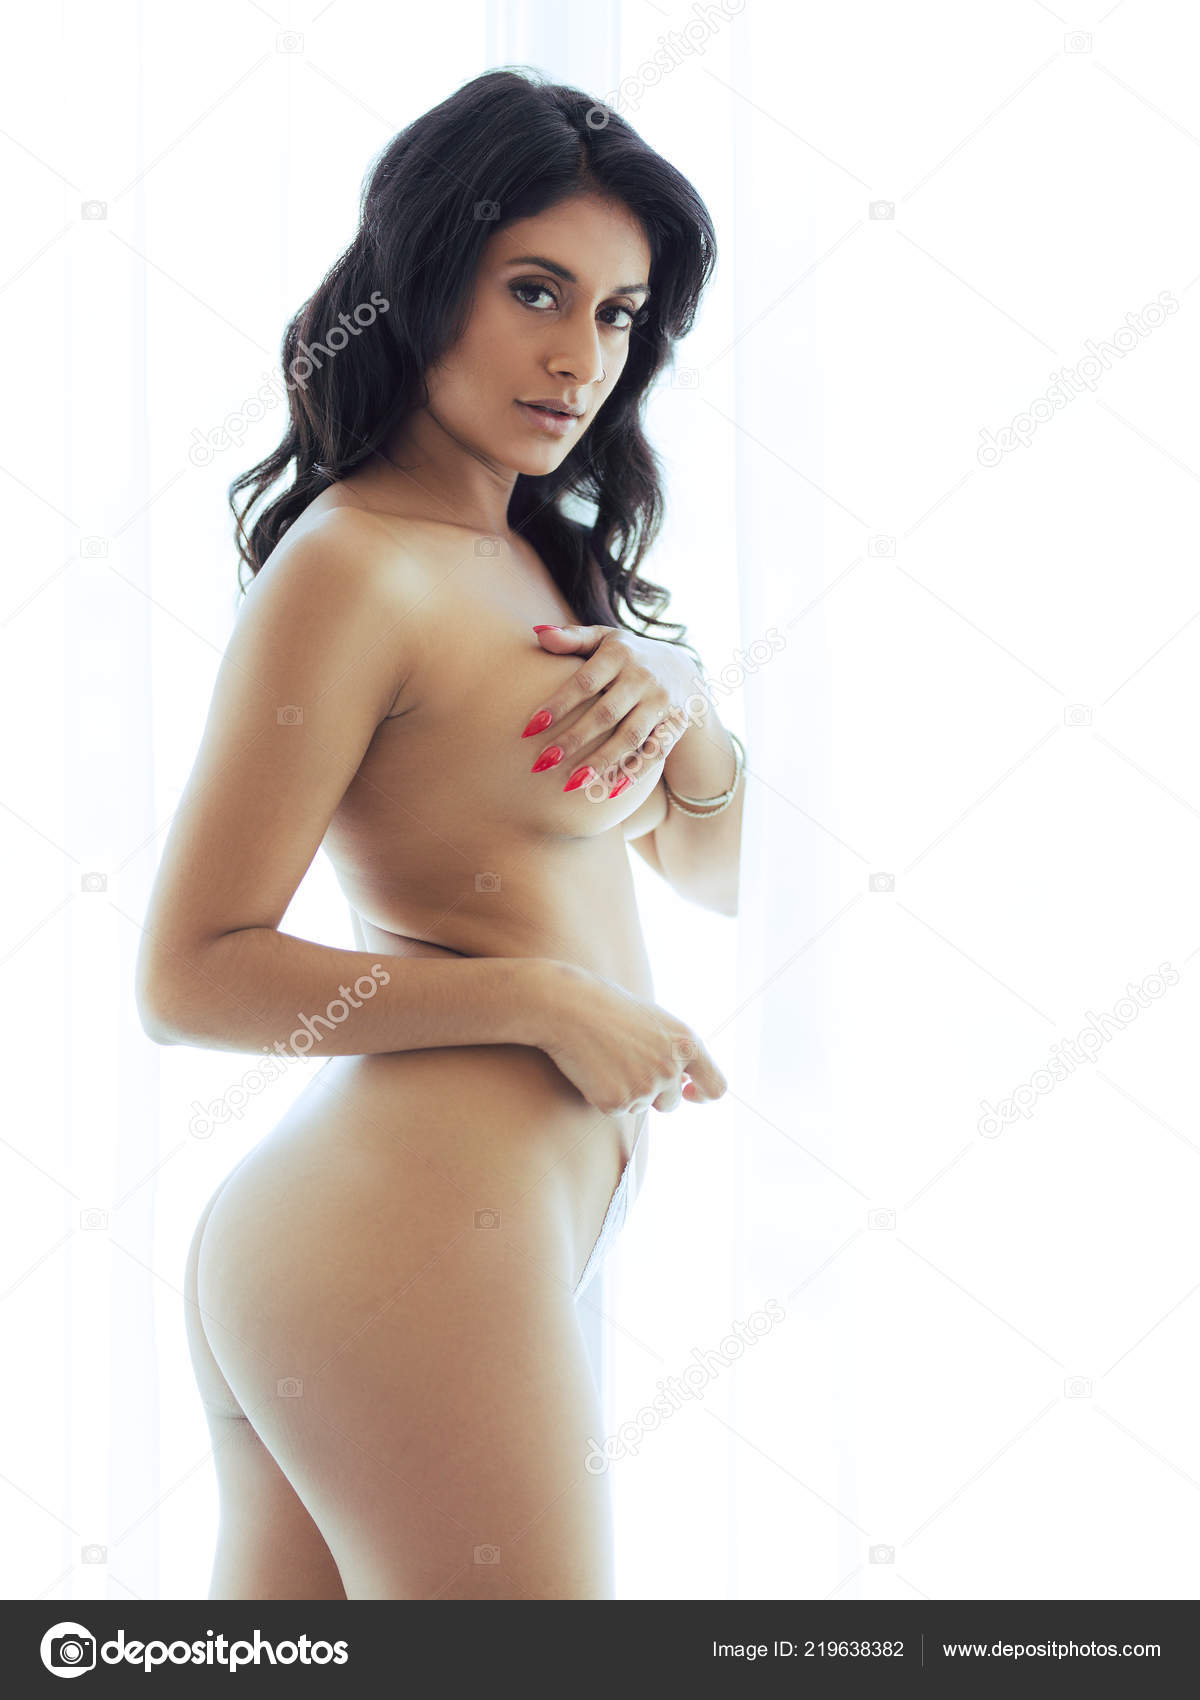 Awesome latina posing in front of a window